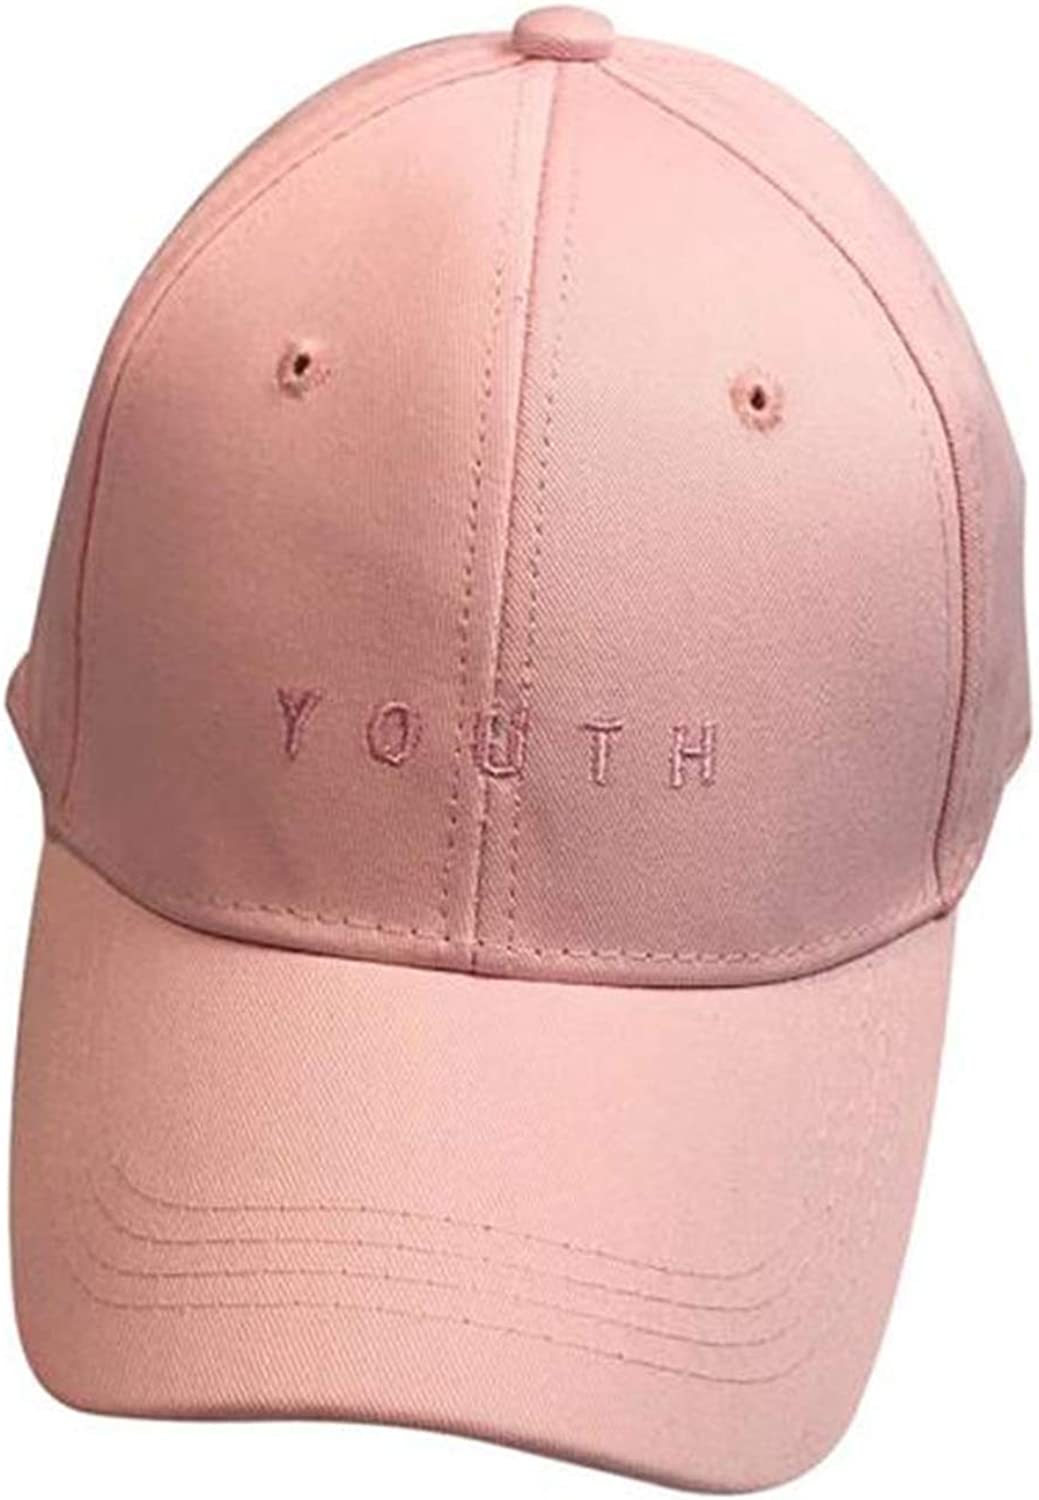 Dal-Msee New Summer hat Embroidery Cotton Baseball Cap Boys Girls Hip Hop Flat Hat